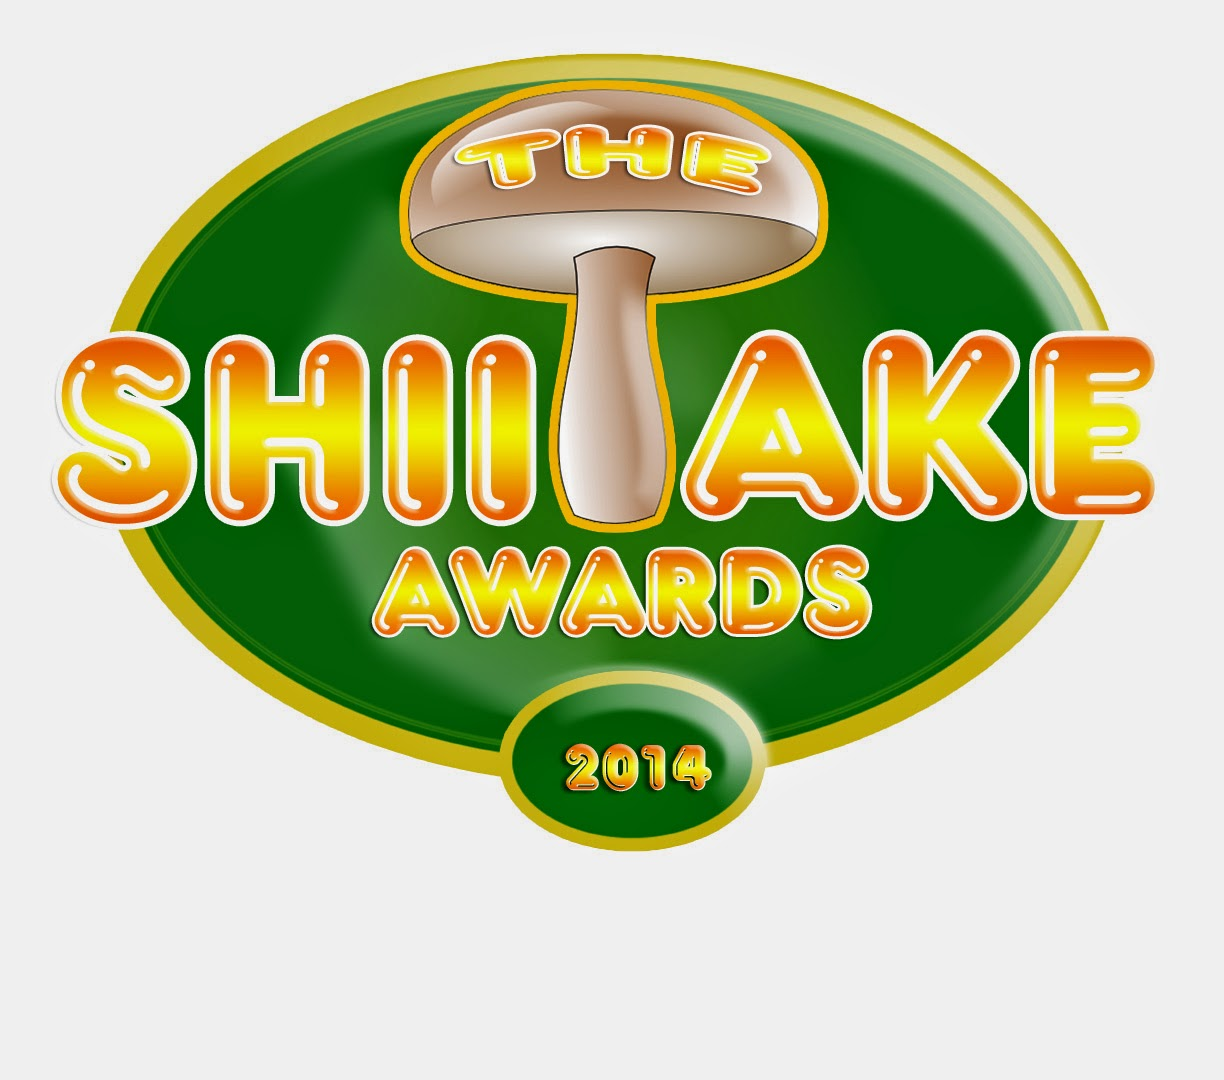 The Shiitake Awards